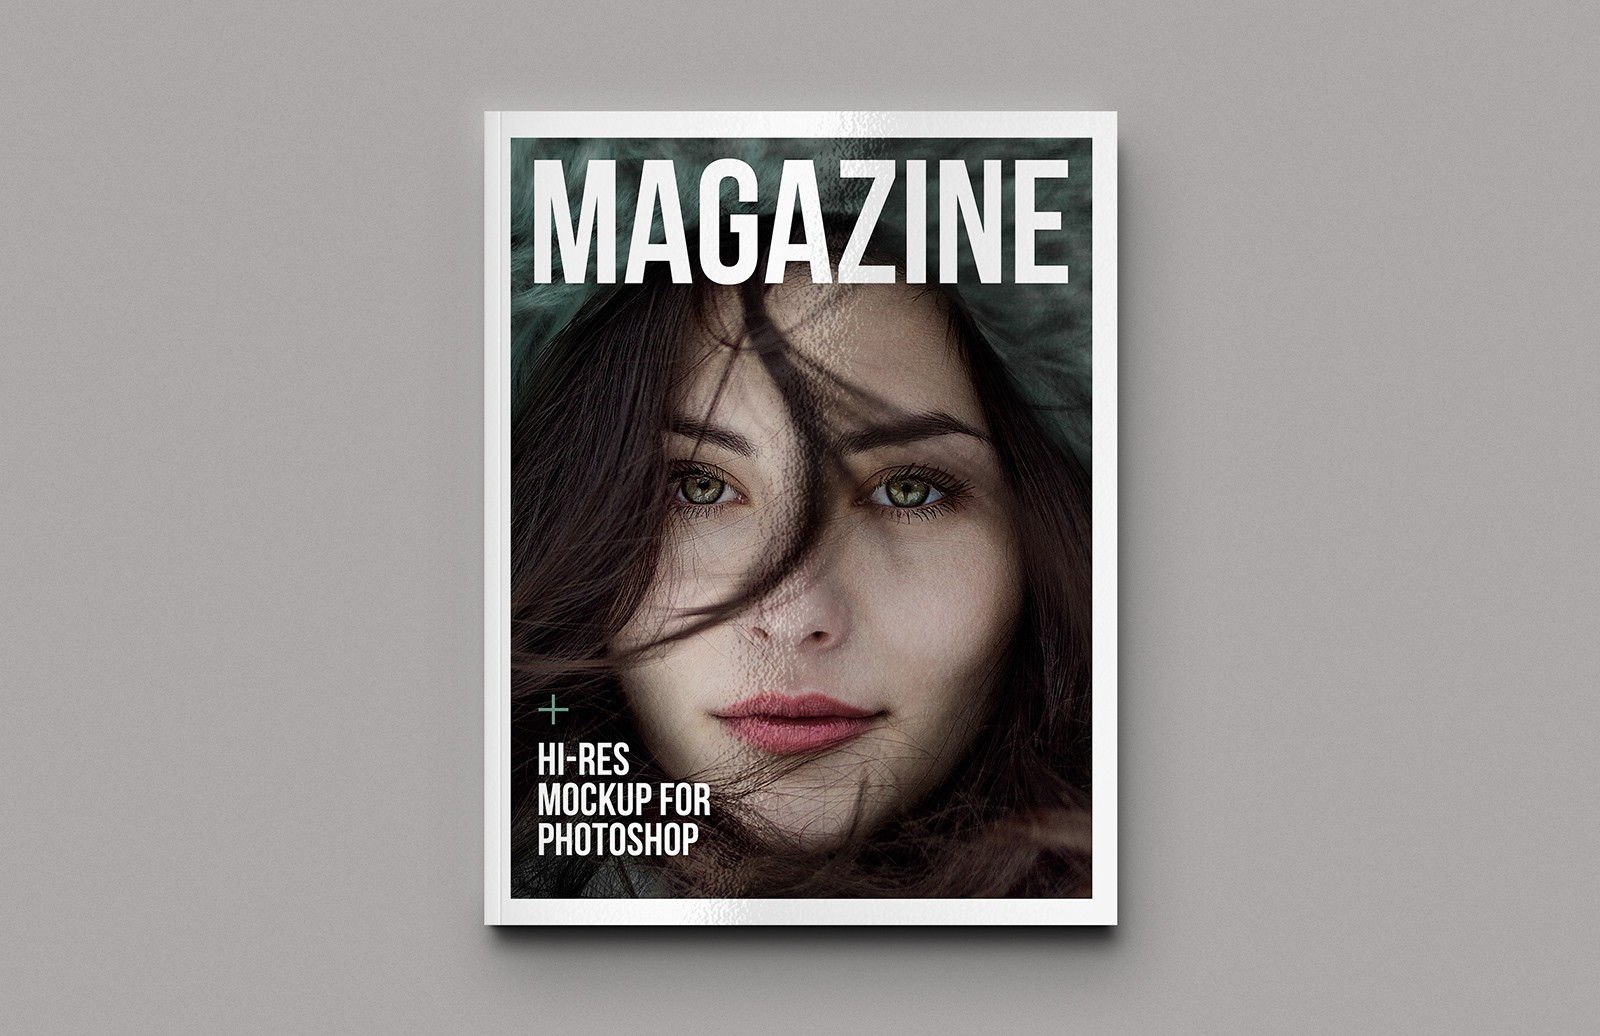 Magazine Mockup Template Preview 1